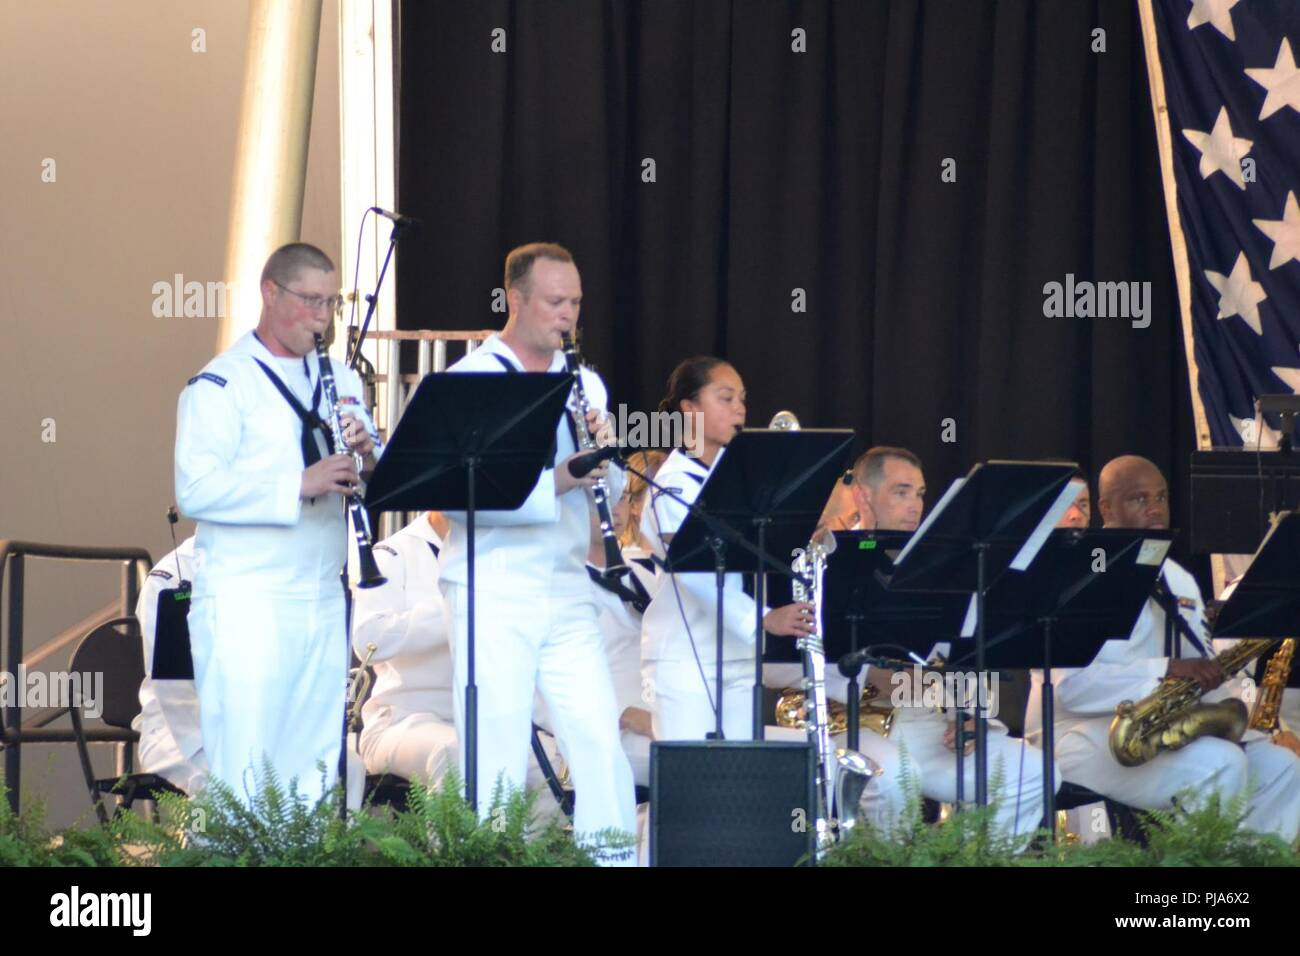 Members of the Wind Ensemble of the US Fleet Forces' Band